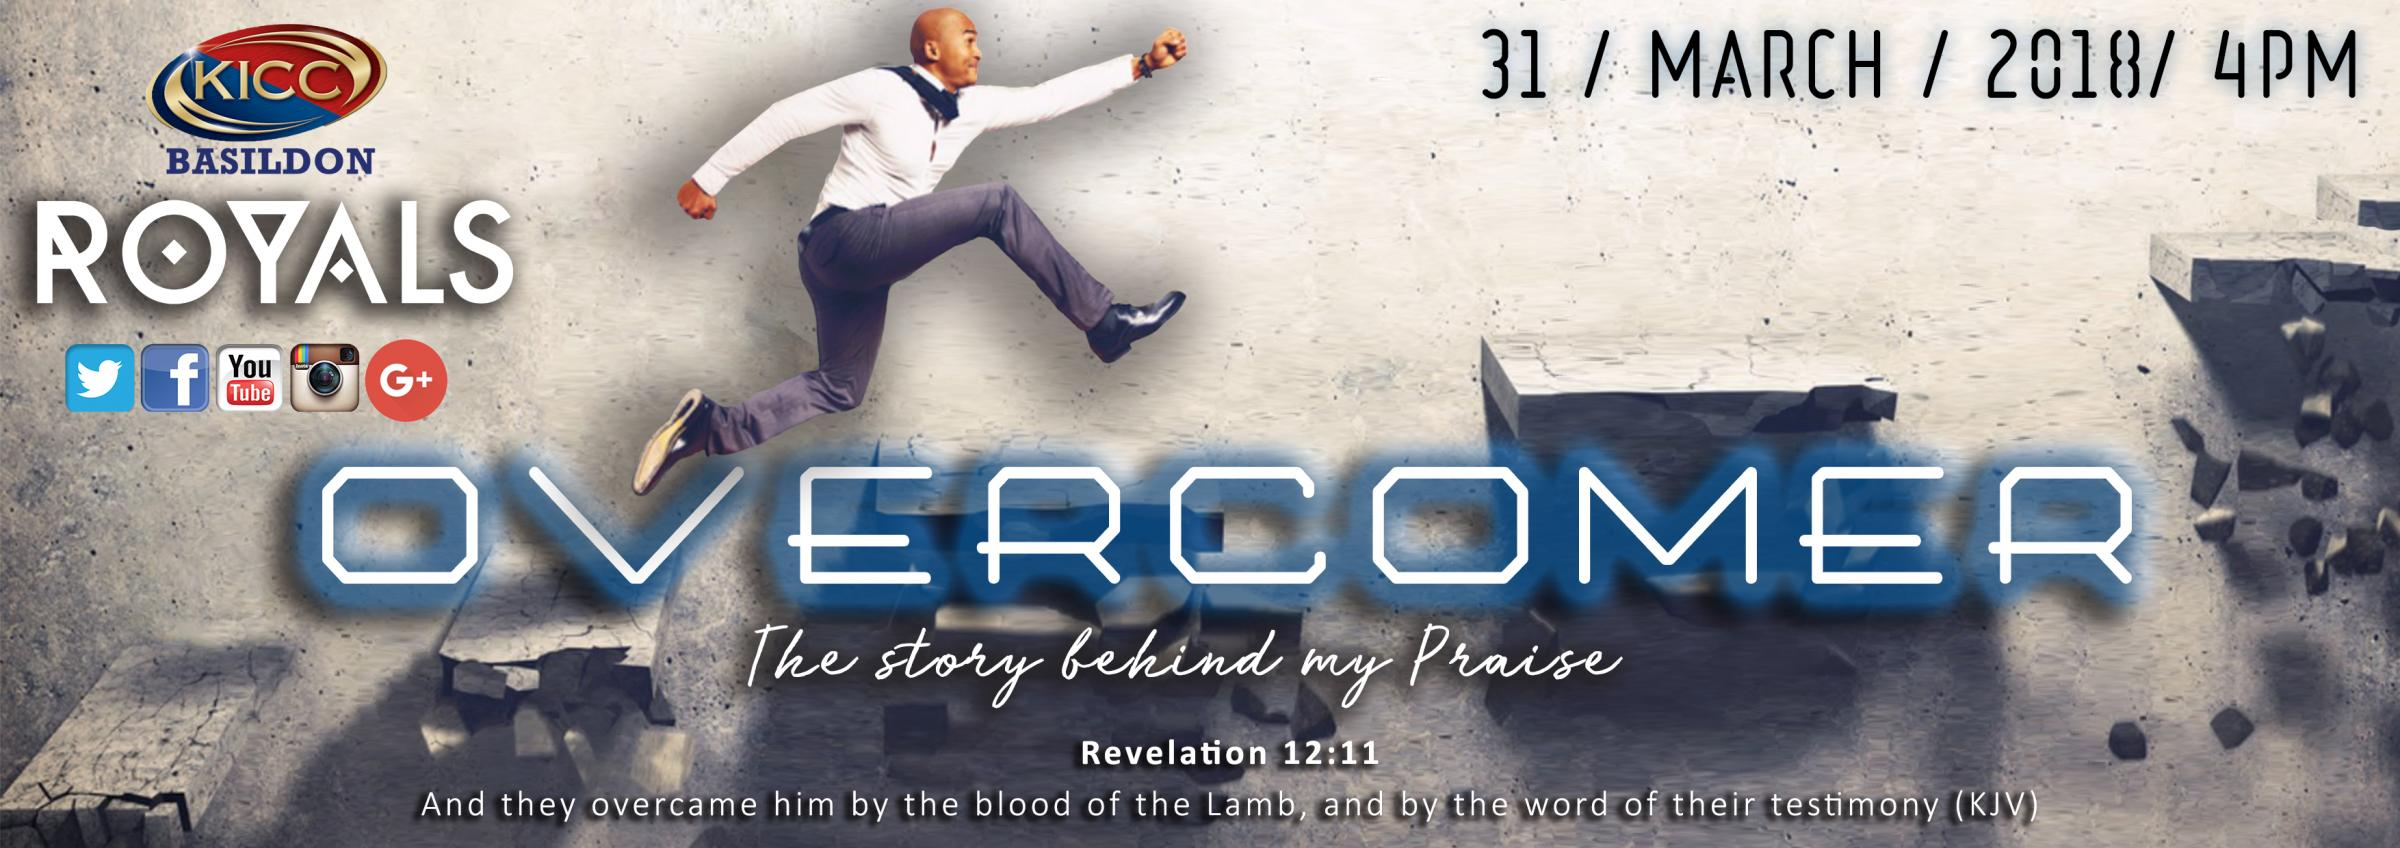 OVERCOMER: The story behind my praise